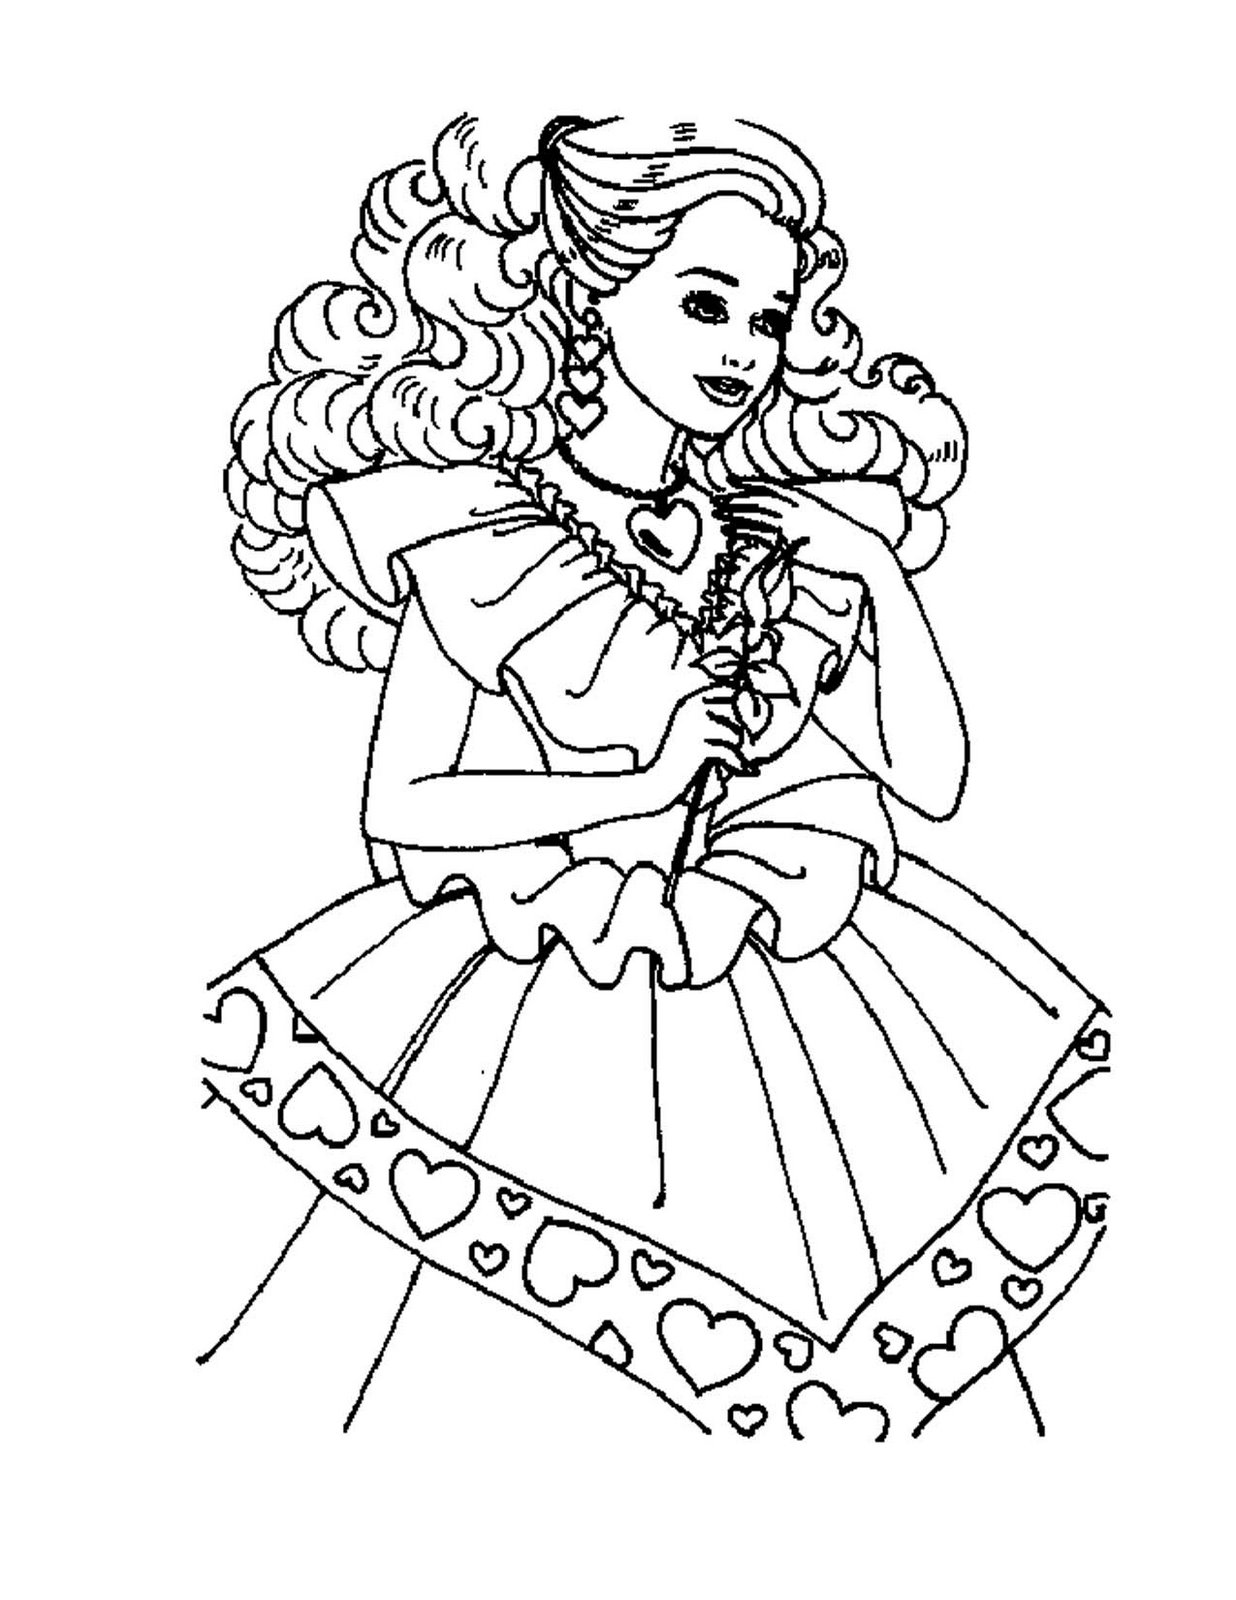 Barbie Mermaid Tale Coloring Pages Printable FunTown